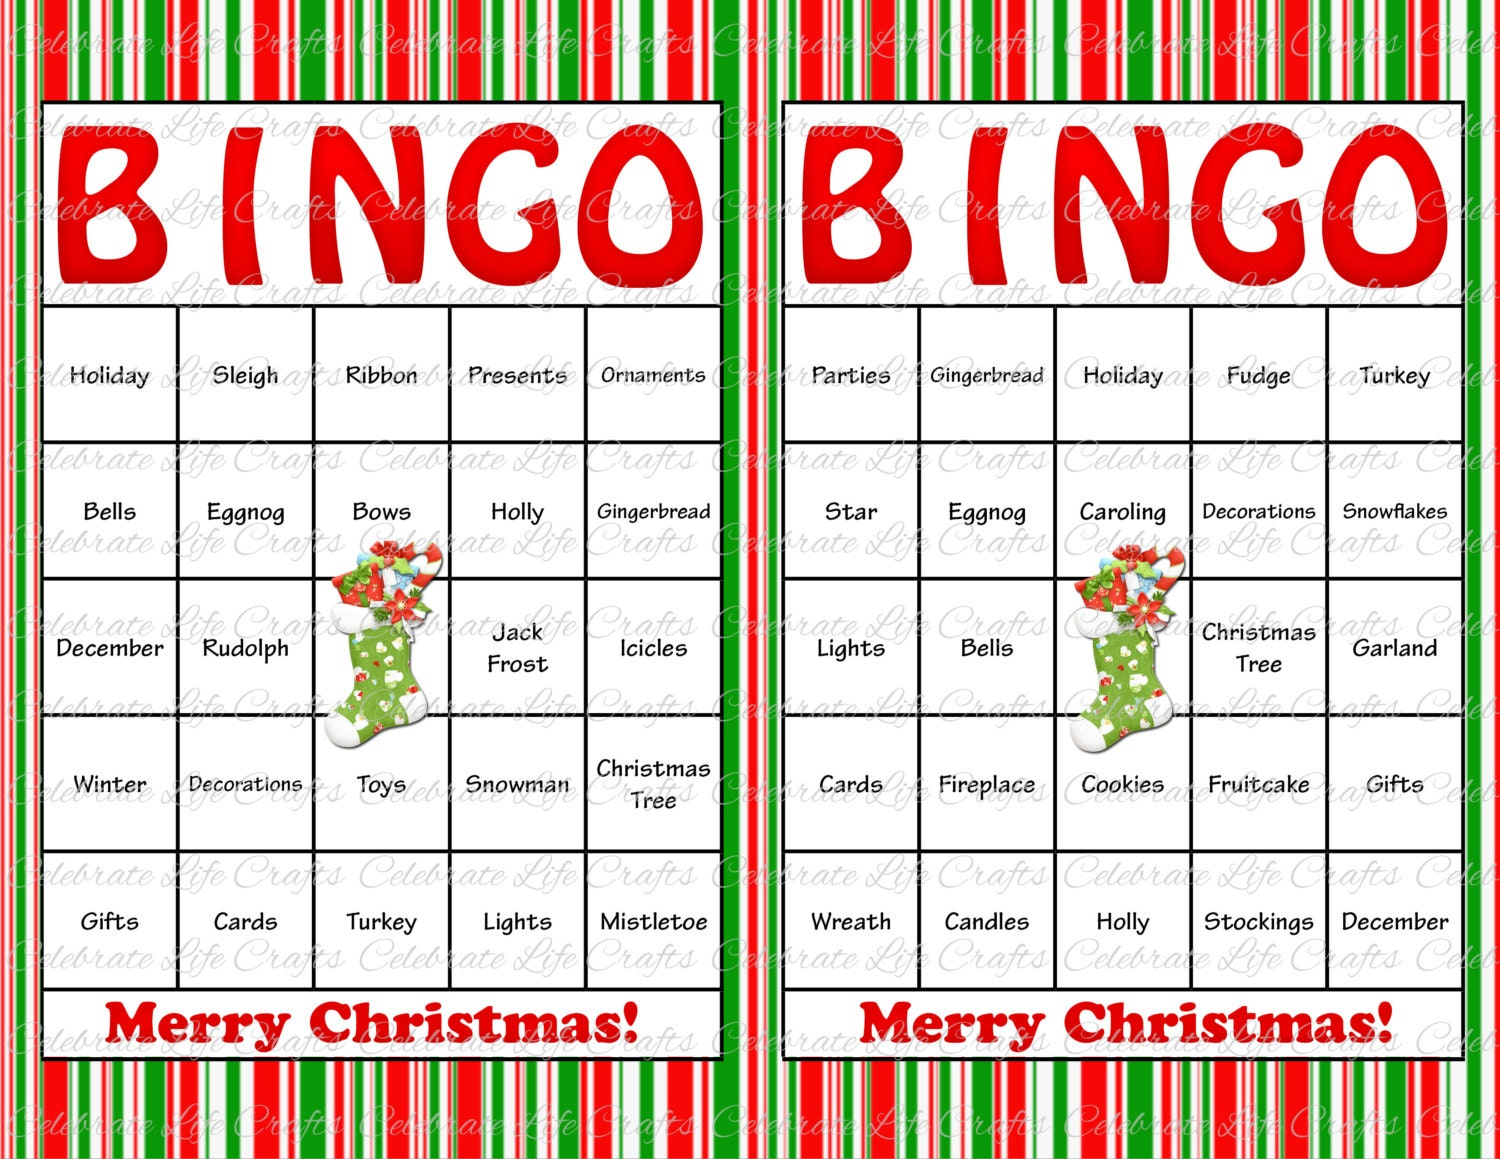 Exceptional image in christmas bingo printable